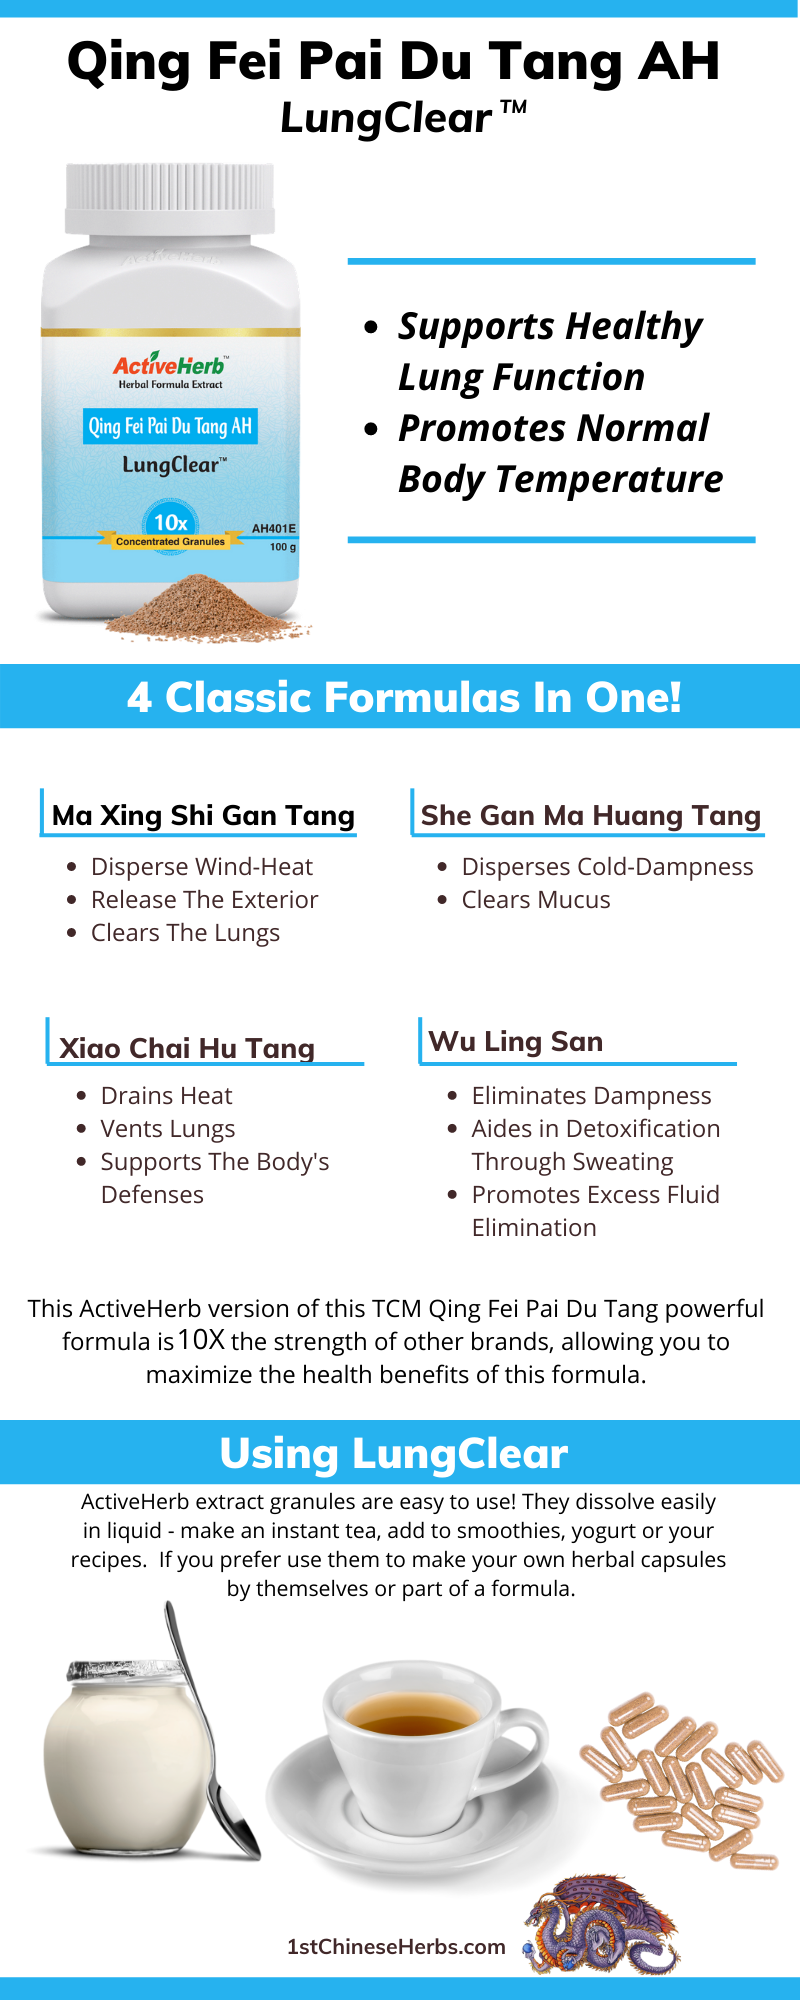 TCM herbal formula for lung function, Chinese herbs for lungs, Chinese herbal extract for covid19, Chinese herbs for flu, herbs for pneumonia